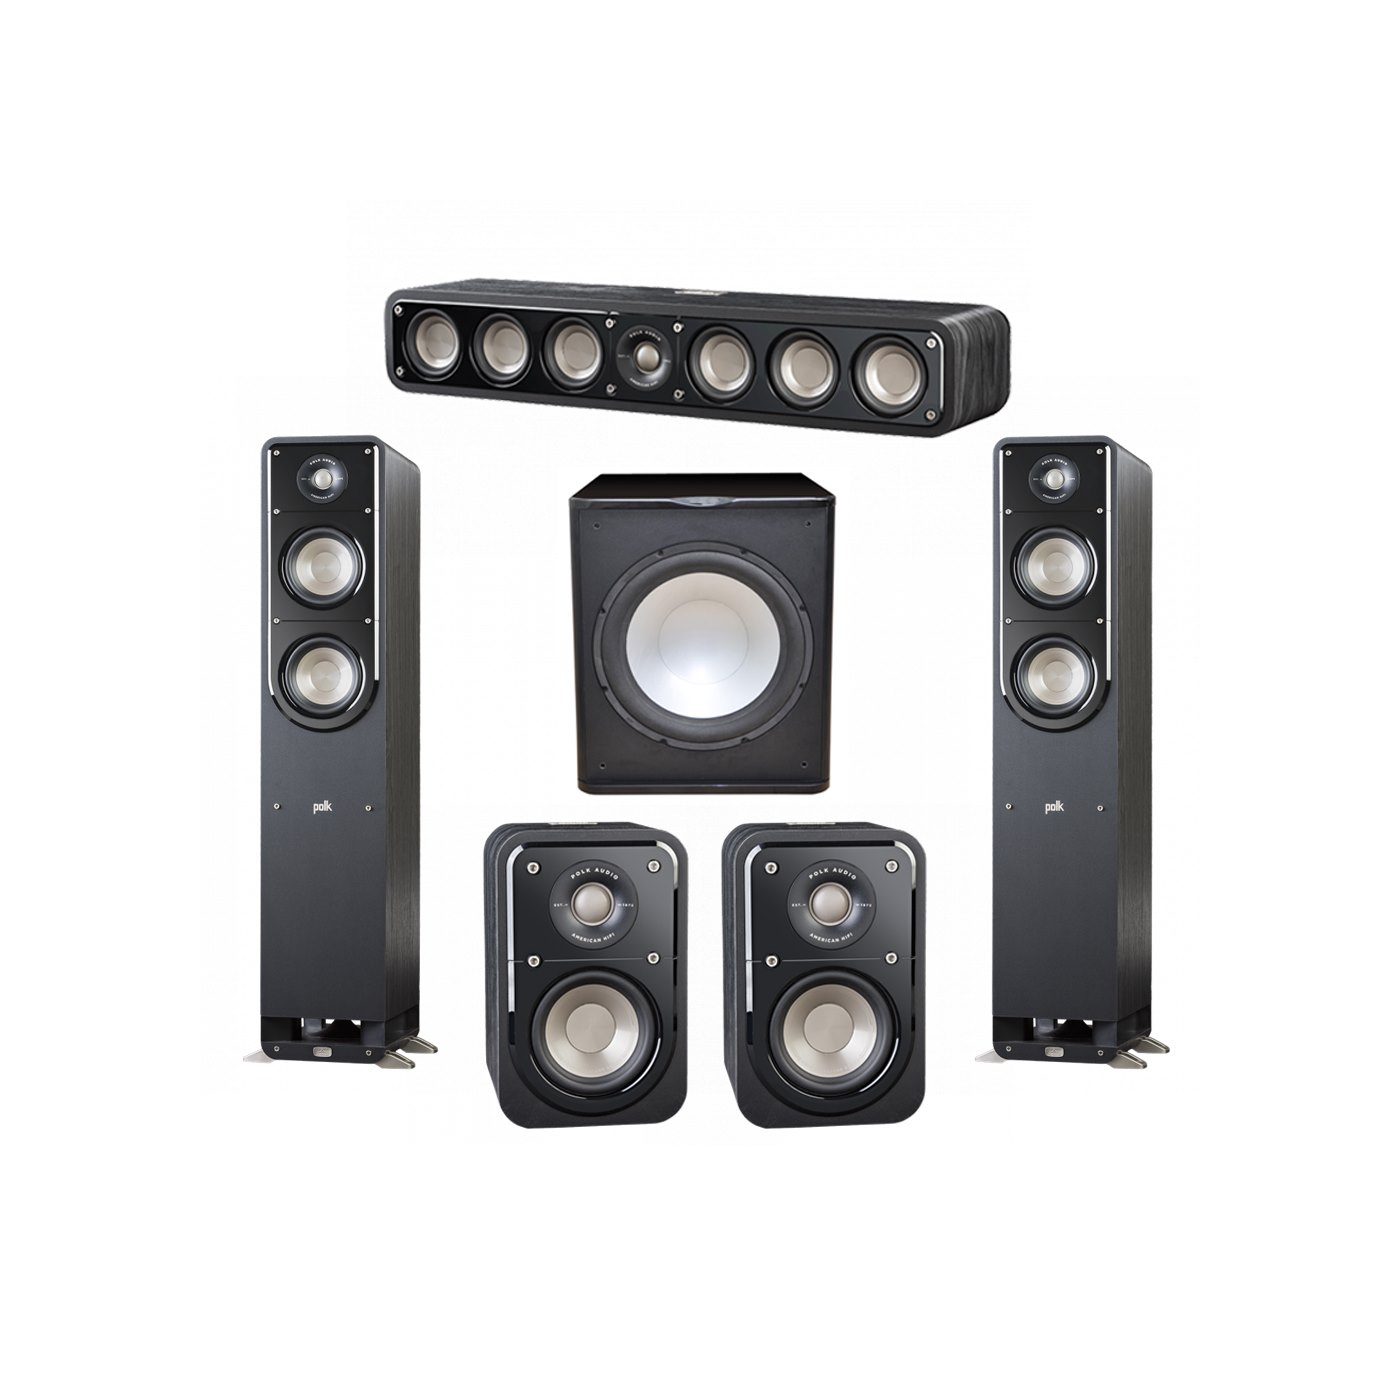 Polk Audio Signature 5.1 System with 2 S50 Tower Speaker, 1 Polk S35 Center Speaker, 2 Polk S10 Surround Speaker, 1 Premier Acoustic PA-150 Powered Subwoofer